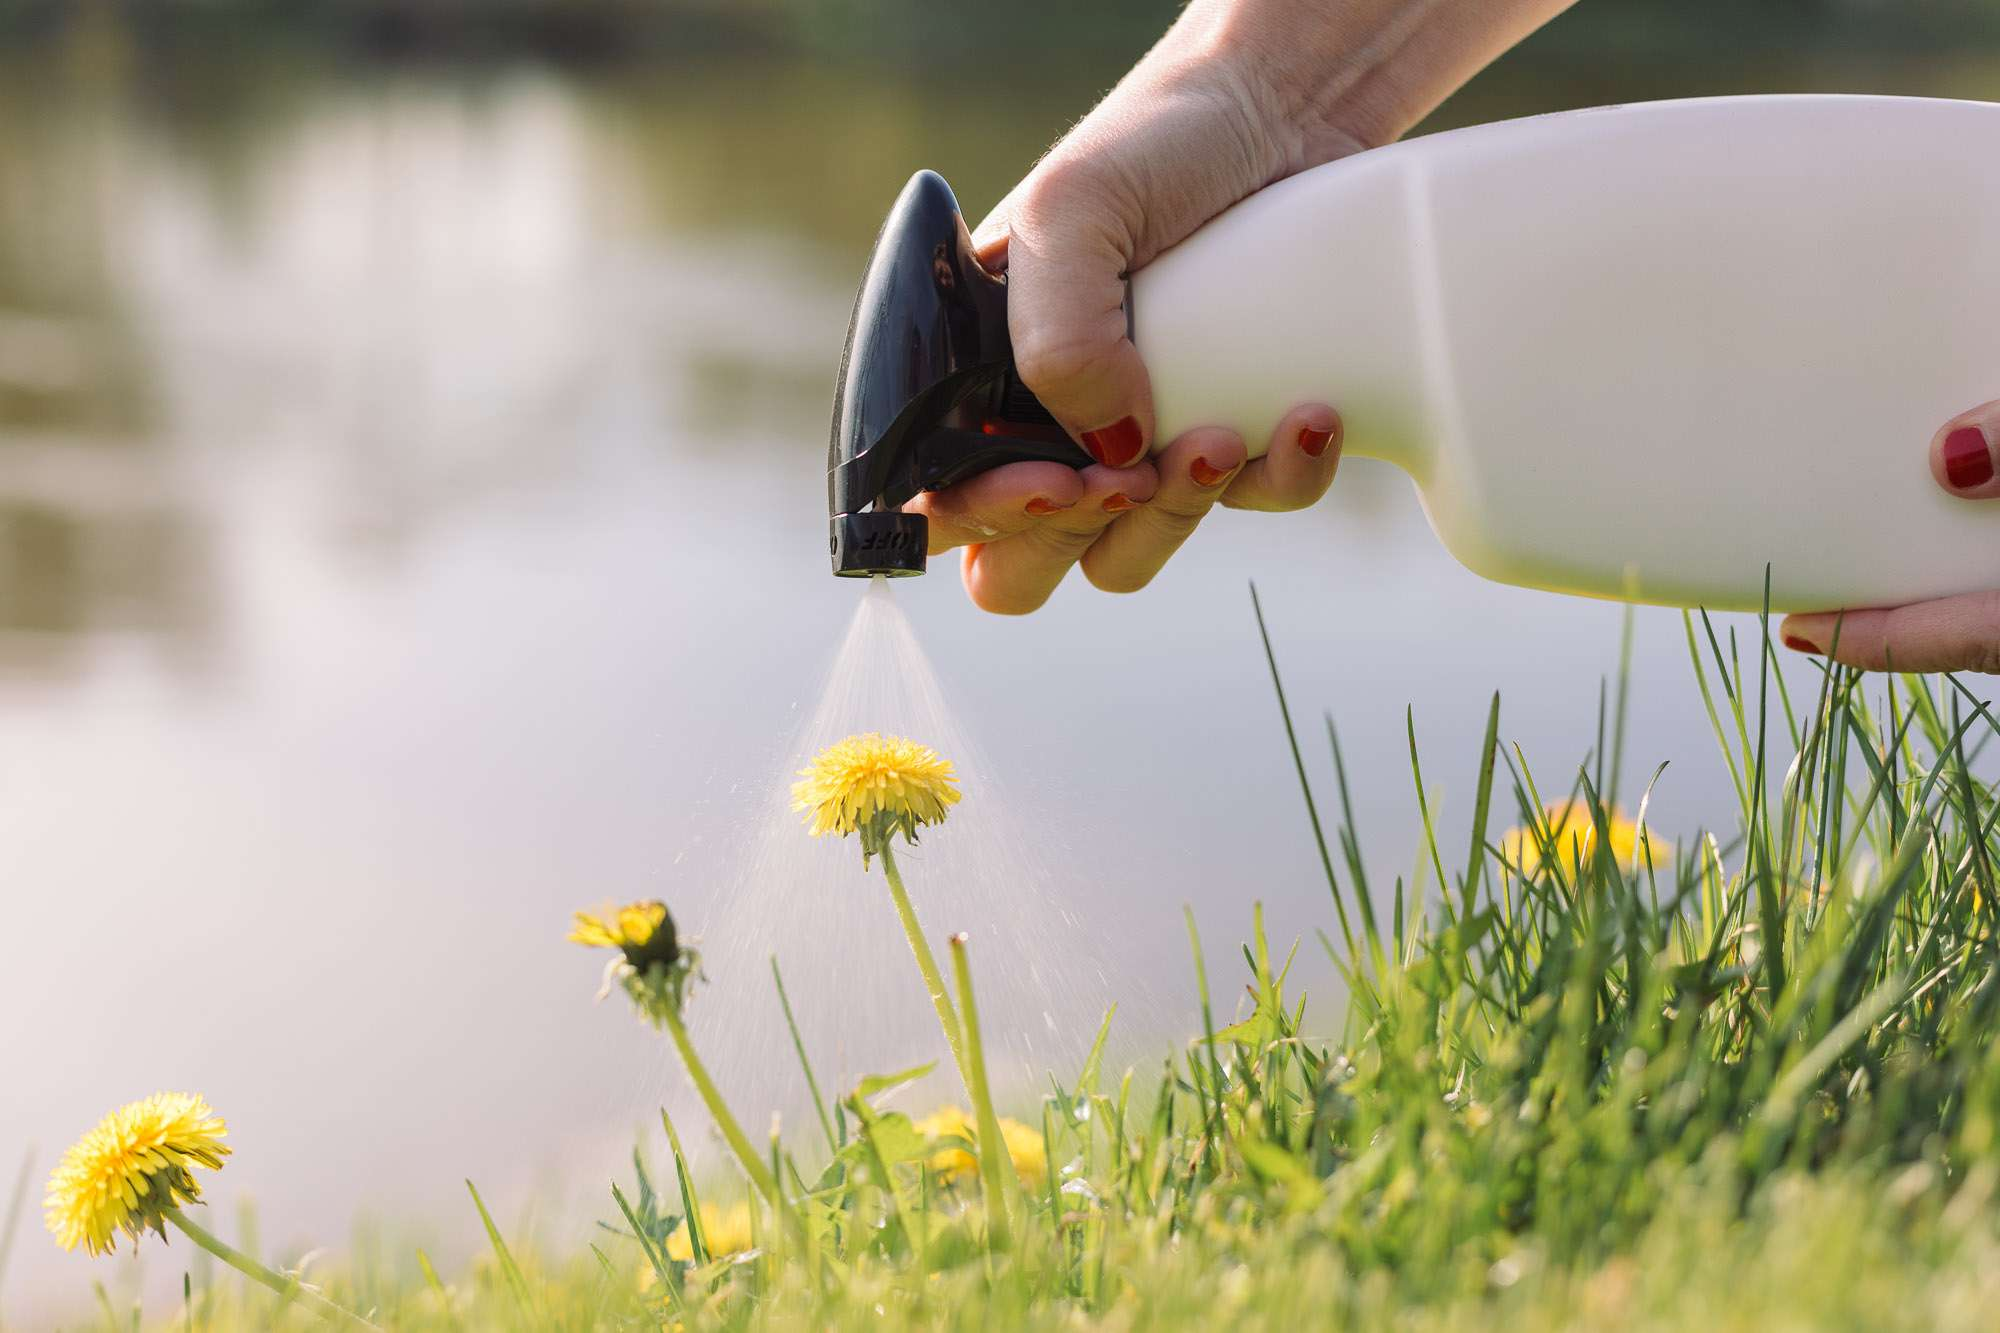 Best Way to Get Rid of Weeds in Garden Permanently (Natural & Chemical Way)